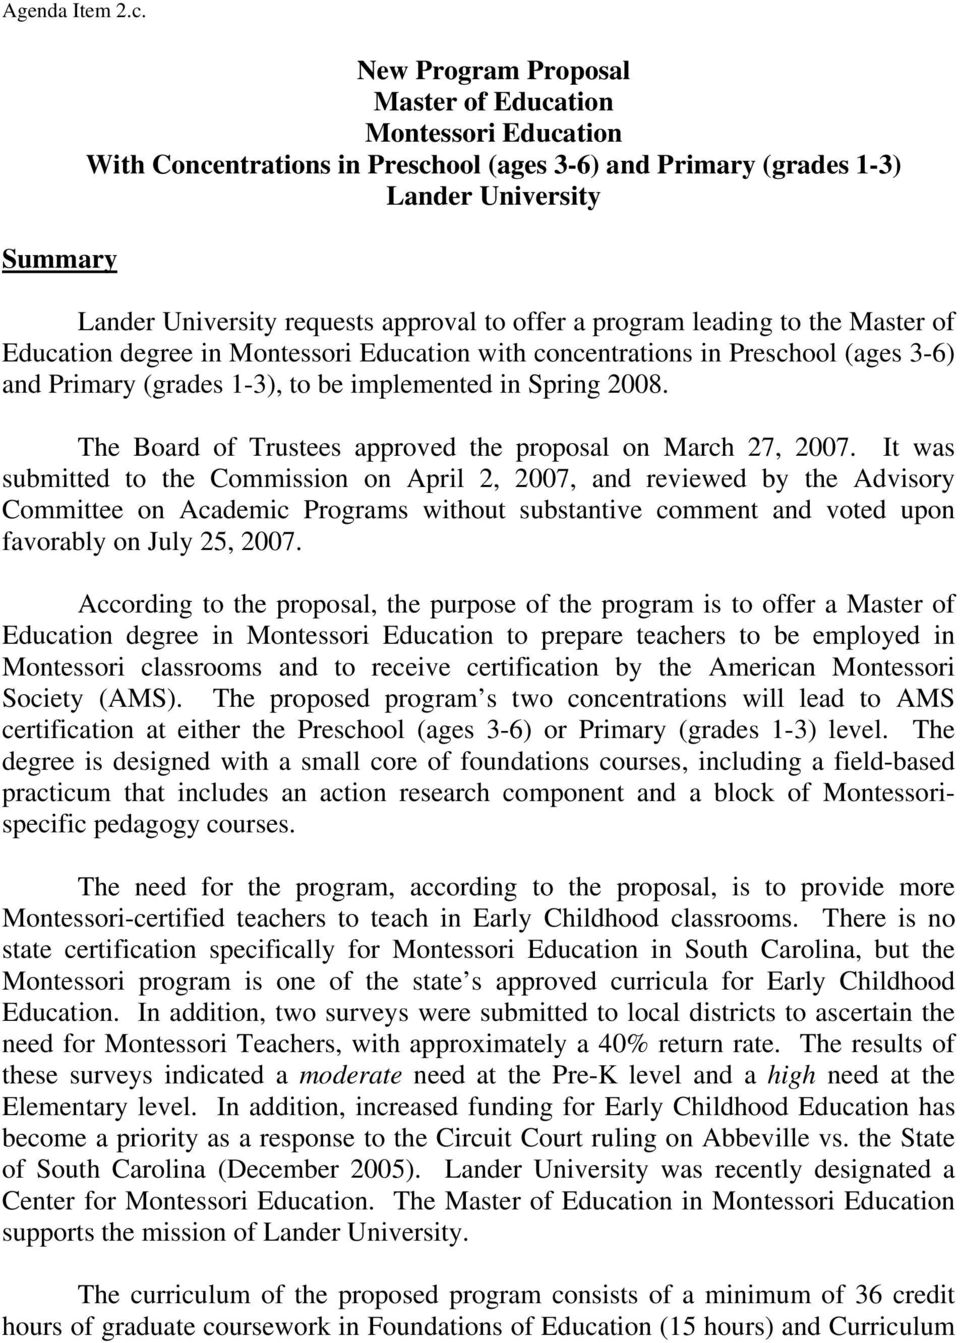 offer a program leading to the Master of Education degree in Montessori Education with concentrations in Preschool (ages 3-6) and Primary (grades 1-3), to be implemented in Spring 2008.